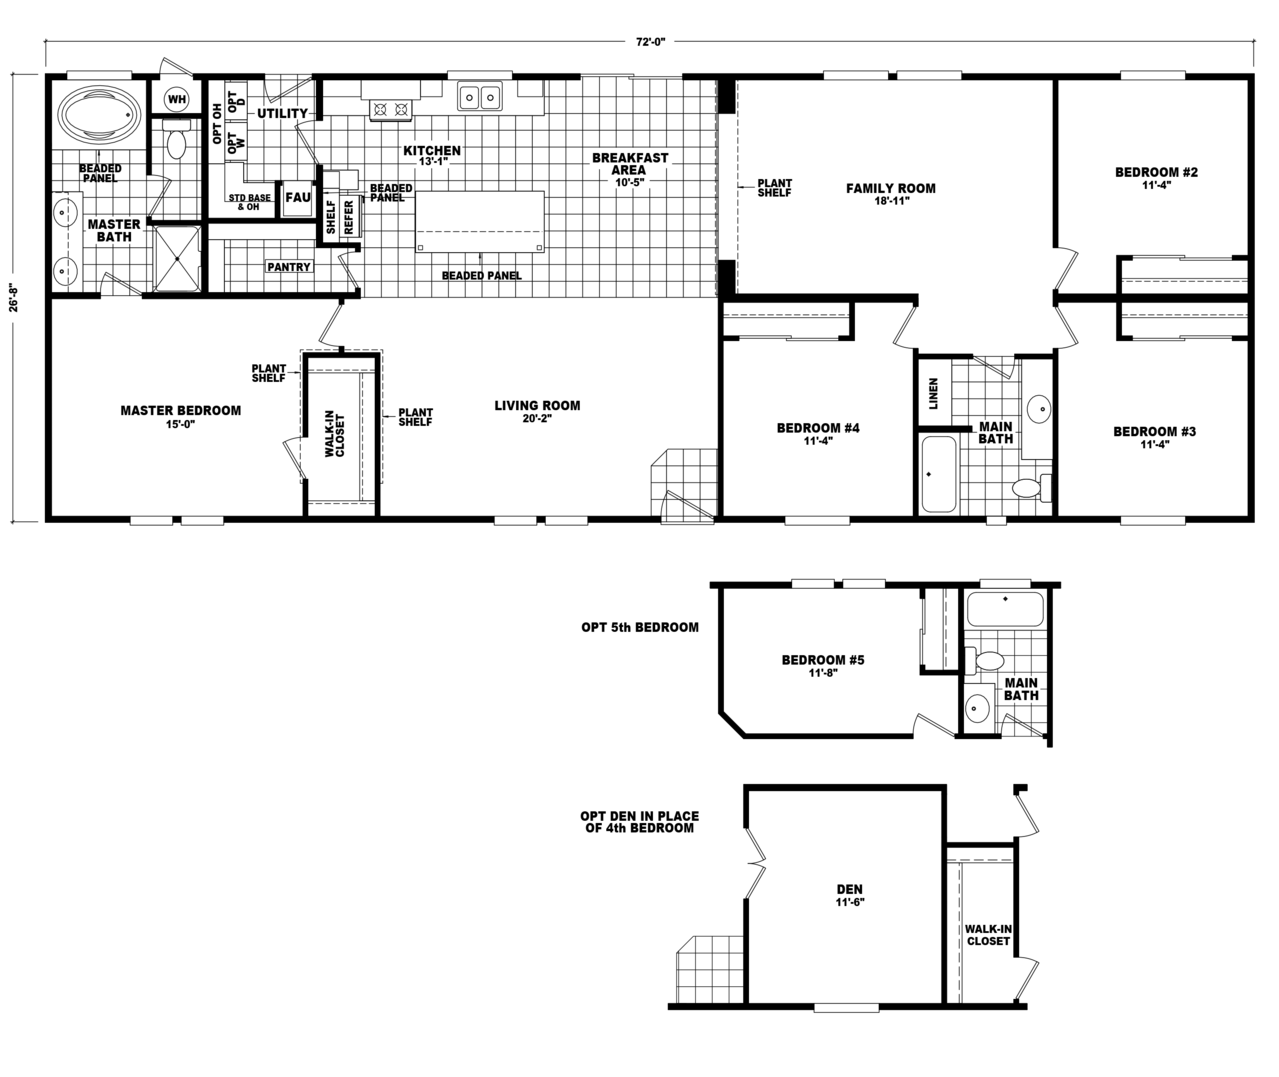 View model hi2872c floor plan for a 1920 sq ft palm harbor for Rv with 2 master bedrooms